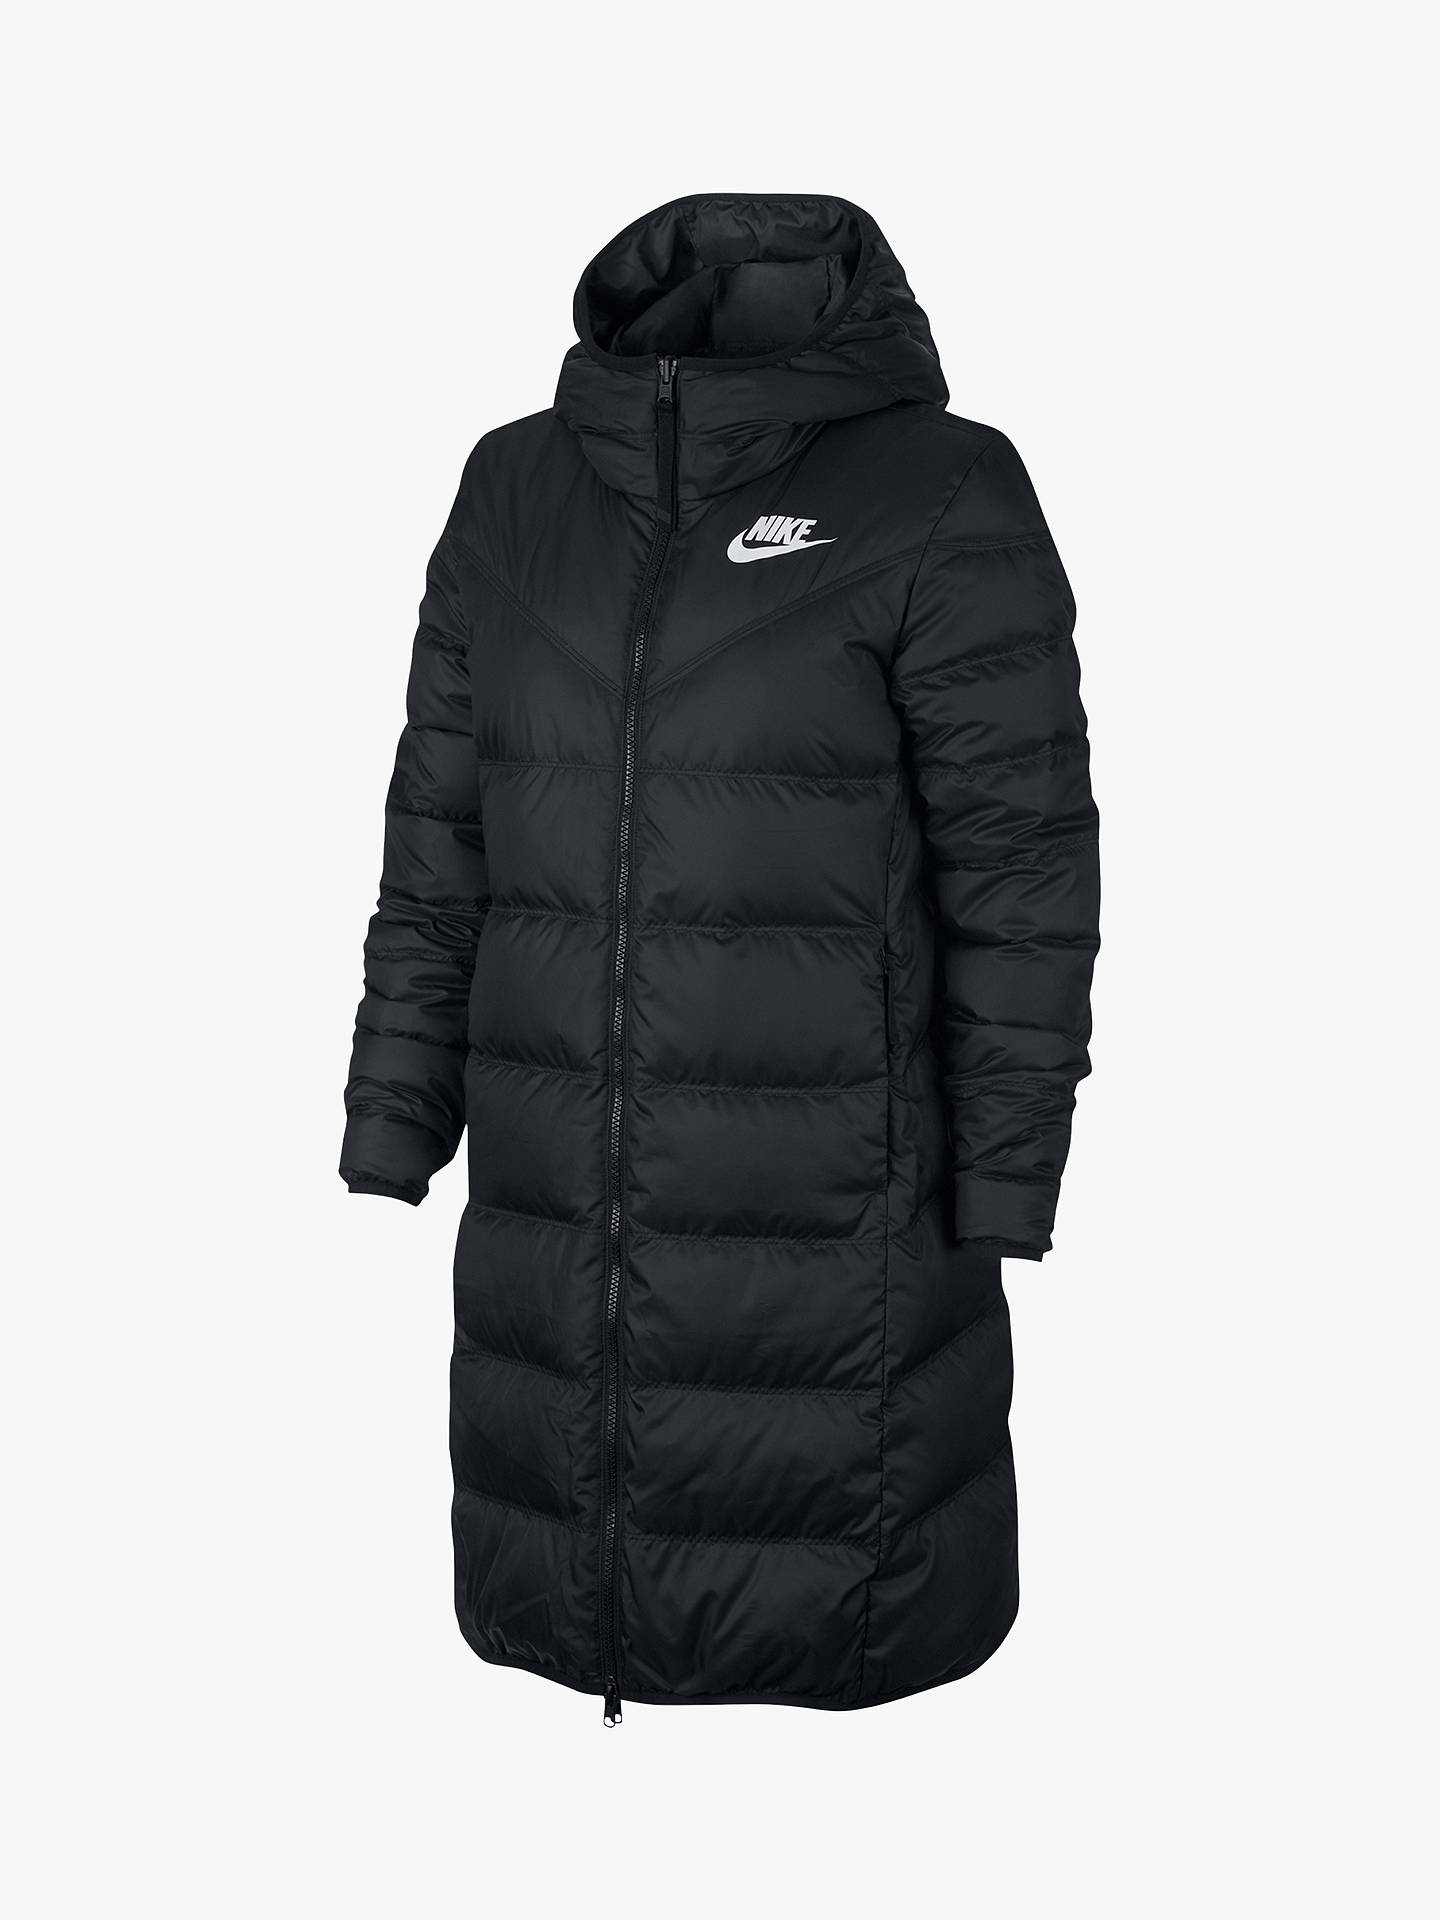 08aaa1bcc0 BuyNike Down Fill Women s Reversible Parka Coat